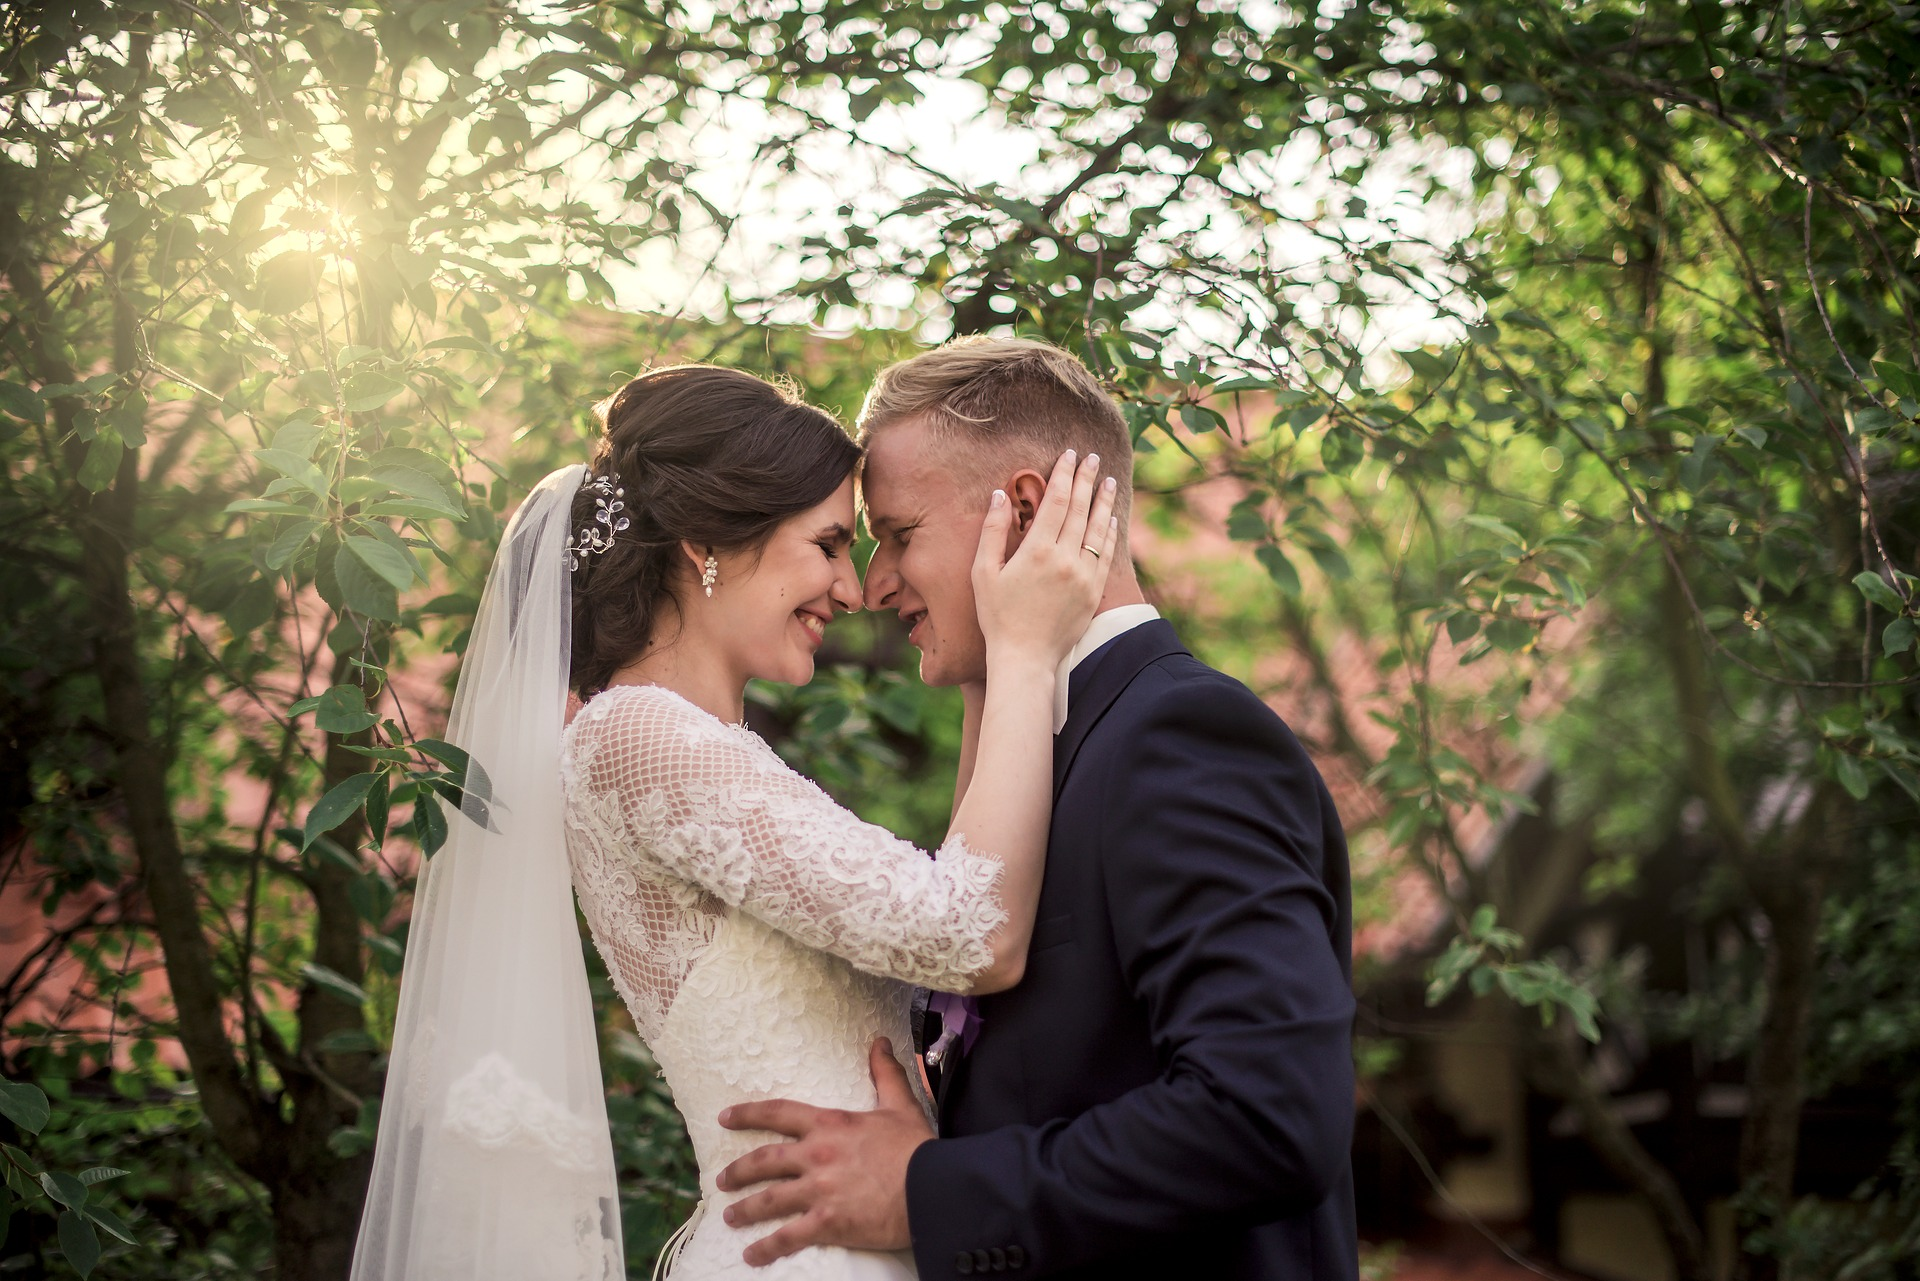 How to Make Your Wedding Night Memorable With a Professional Photographer